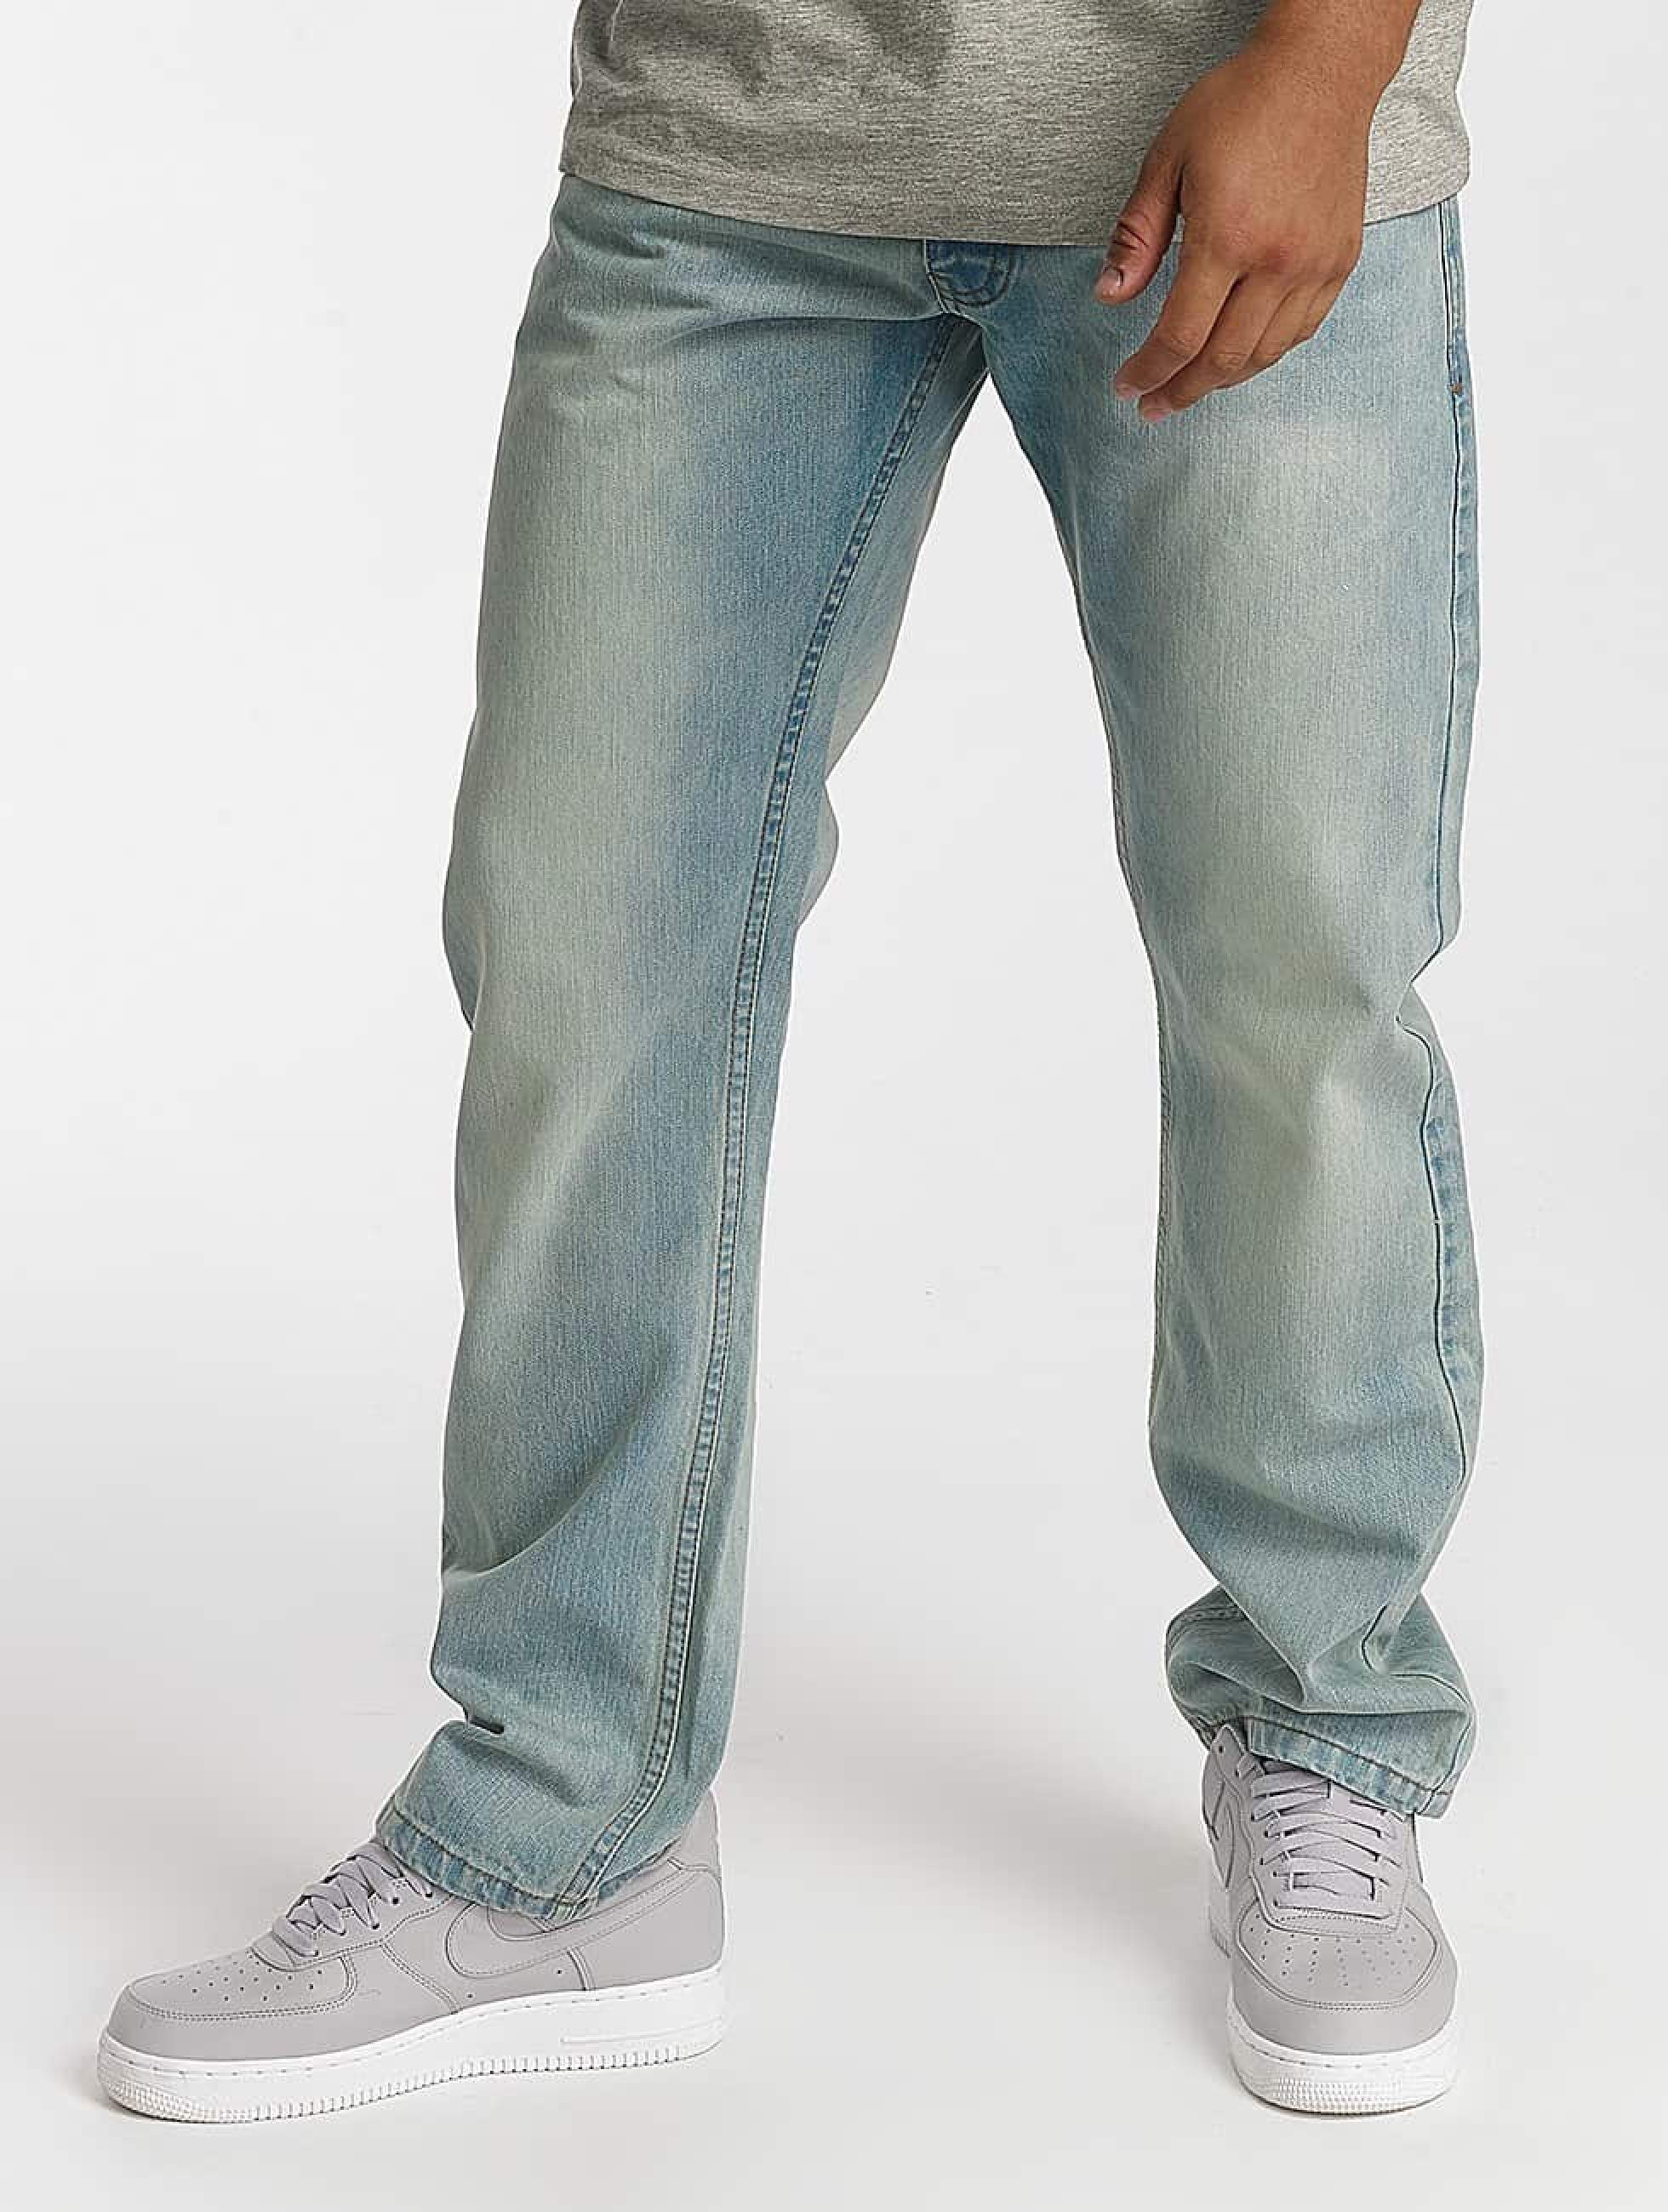 Rocawear / Straight Fit Jeans Tony Fit in blue W 31 L 34